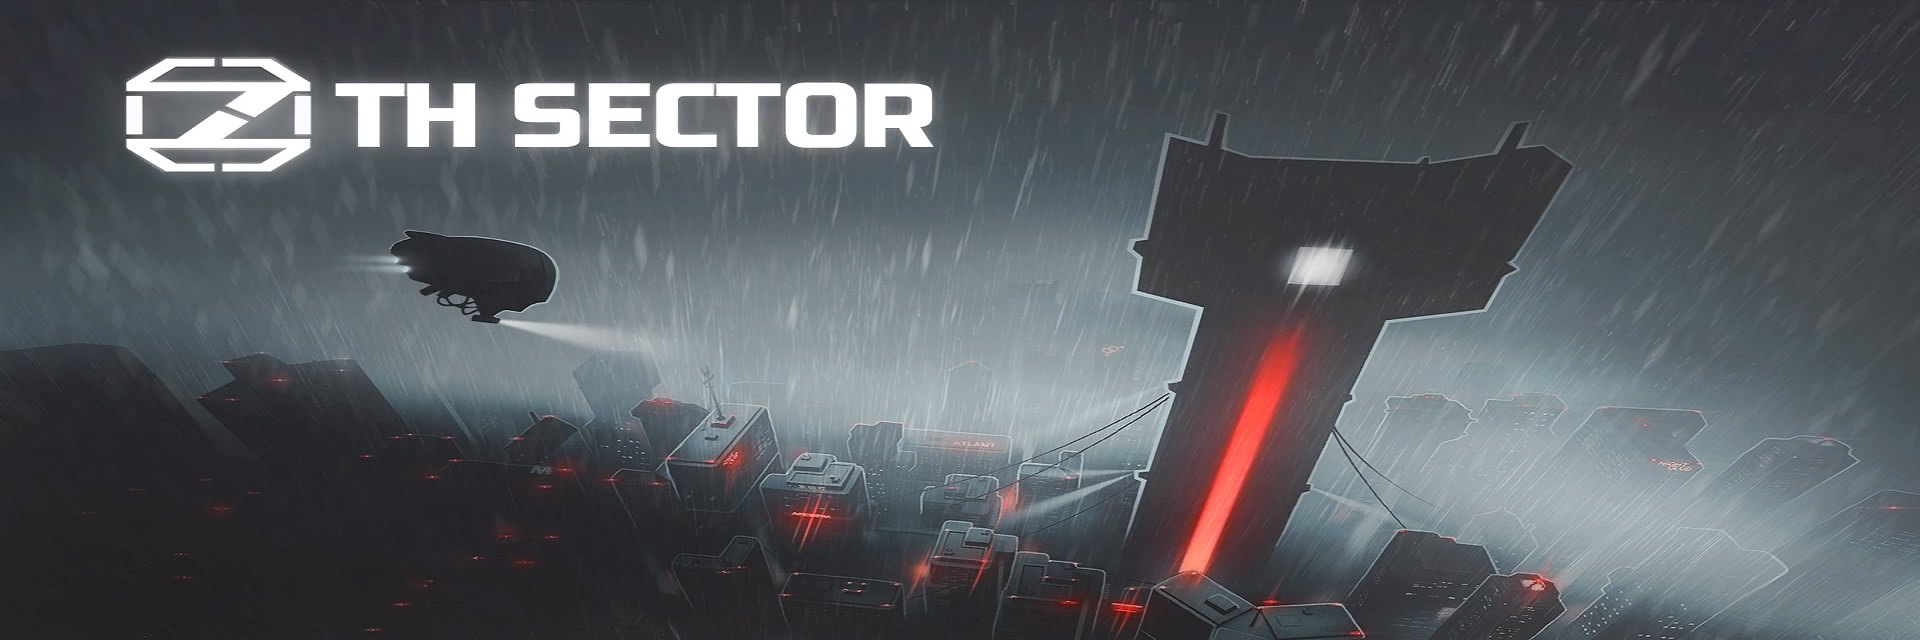 pagina gioco di 7th Sector